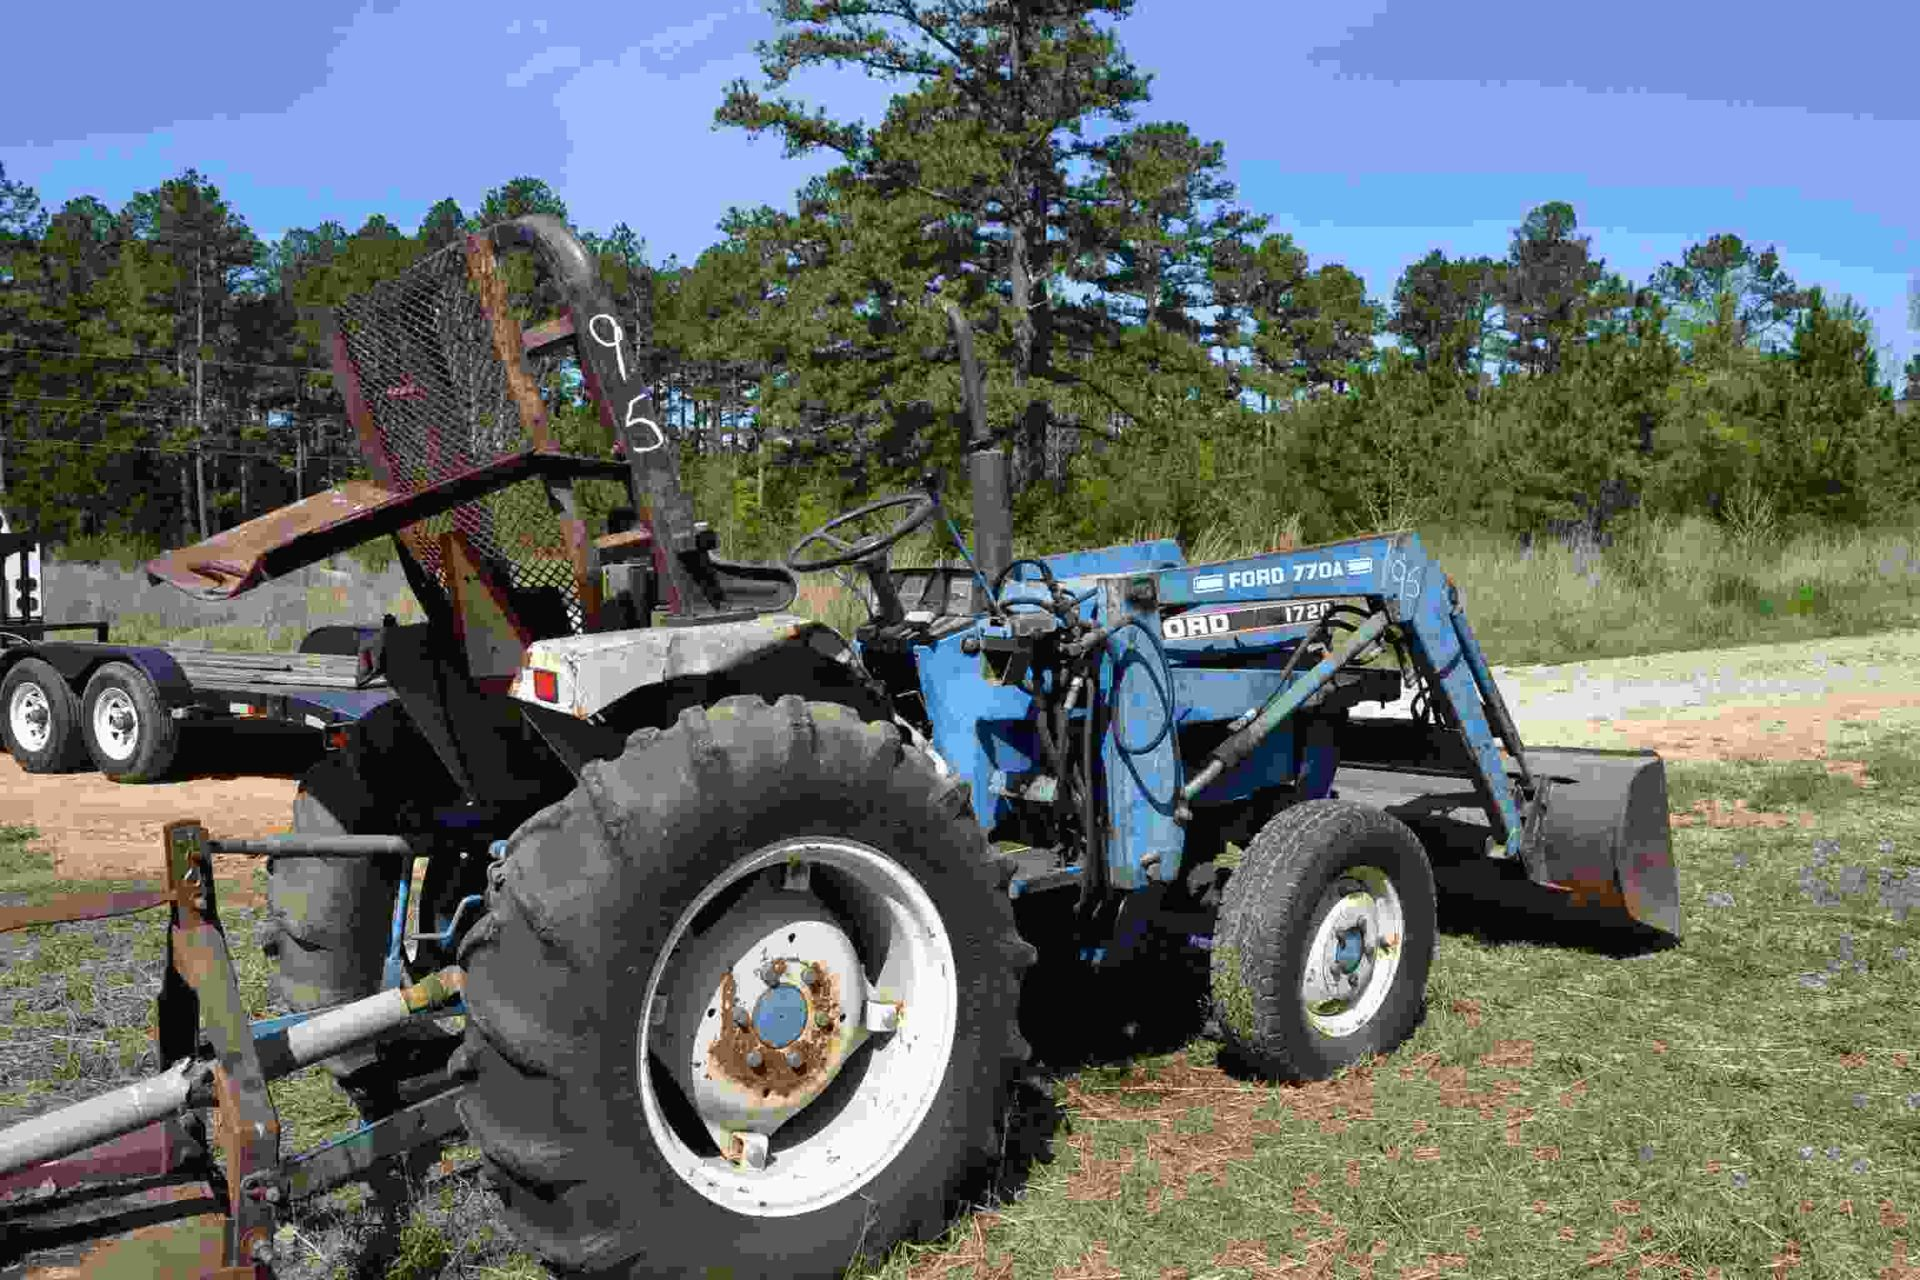 Lot 95 - FORD 1720 4X4 FORD TRACTOR W/ DIESEL ENGINE W/ FRONT END LOADER 1594 HOURS LOCATED SITE 1